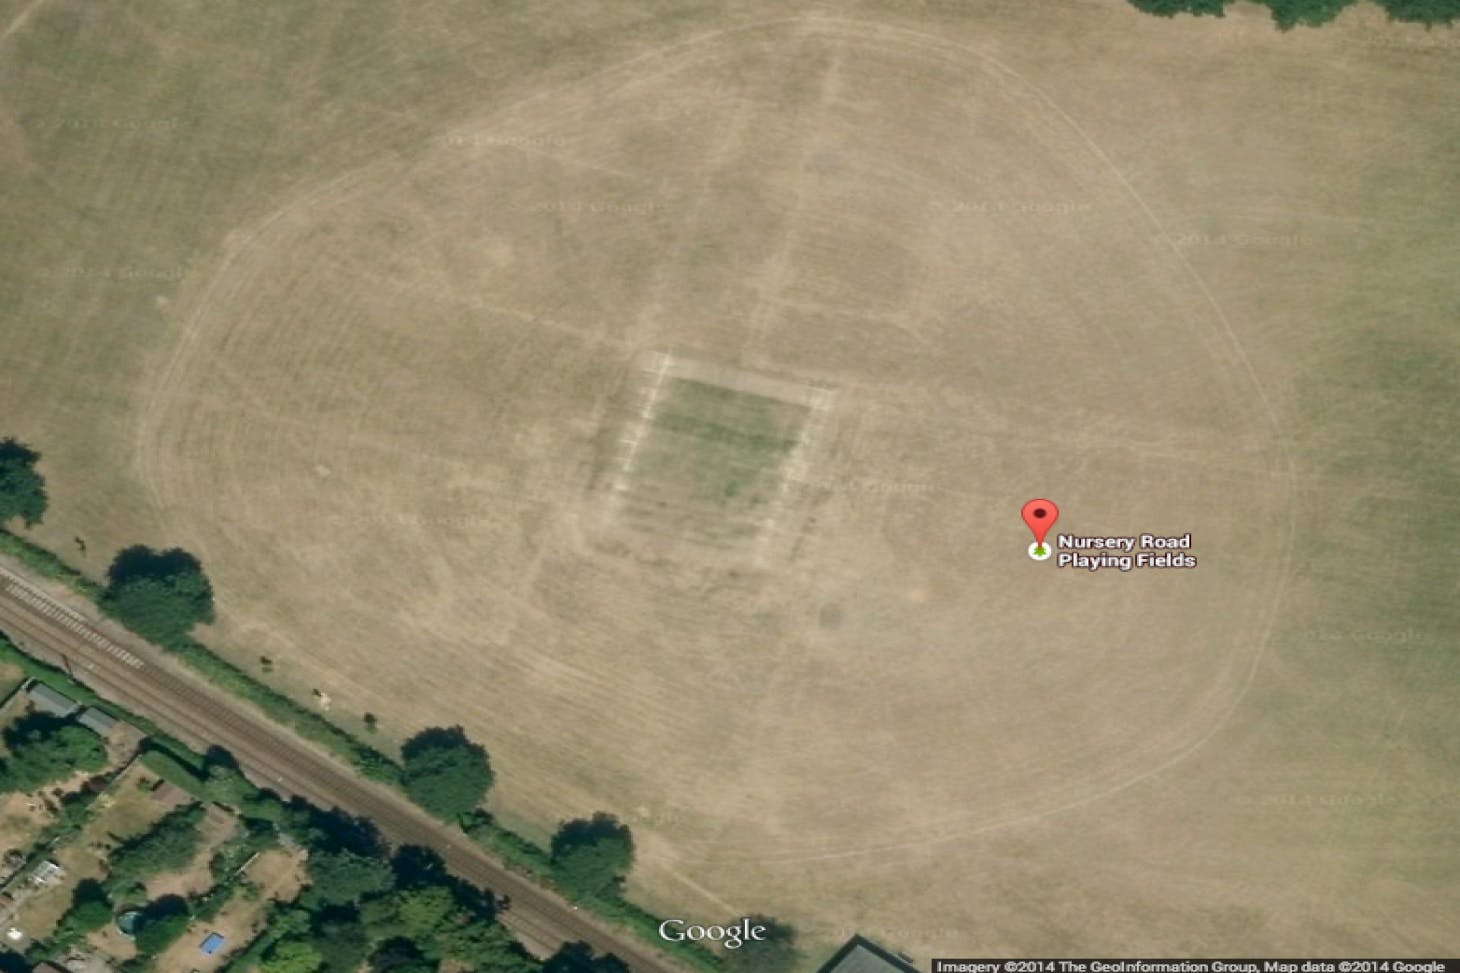 Nursery Road Playing Fields Full size | Grass cricket facilities